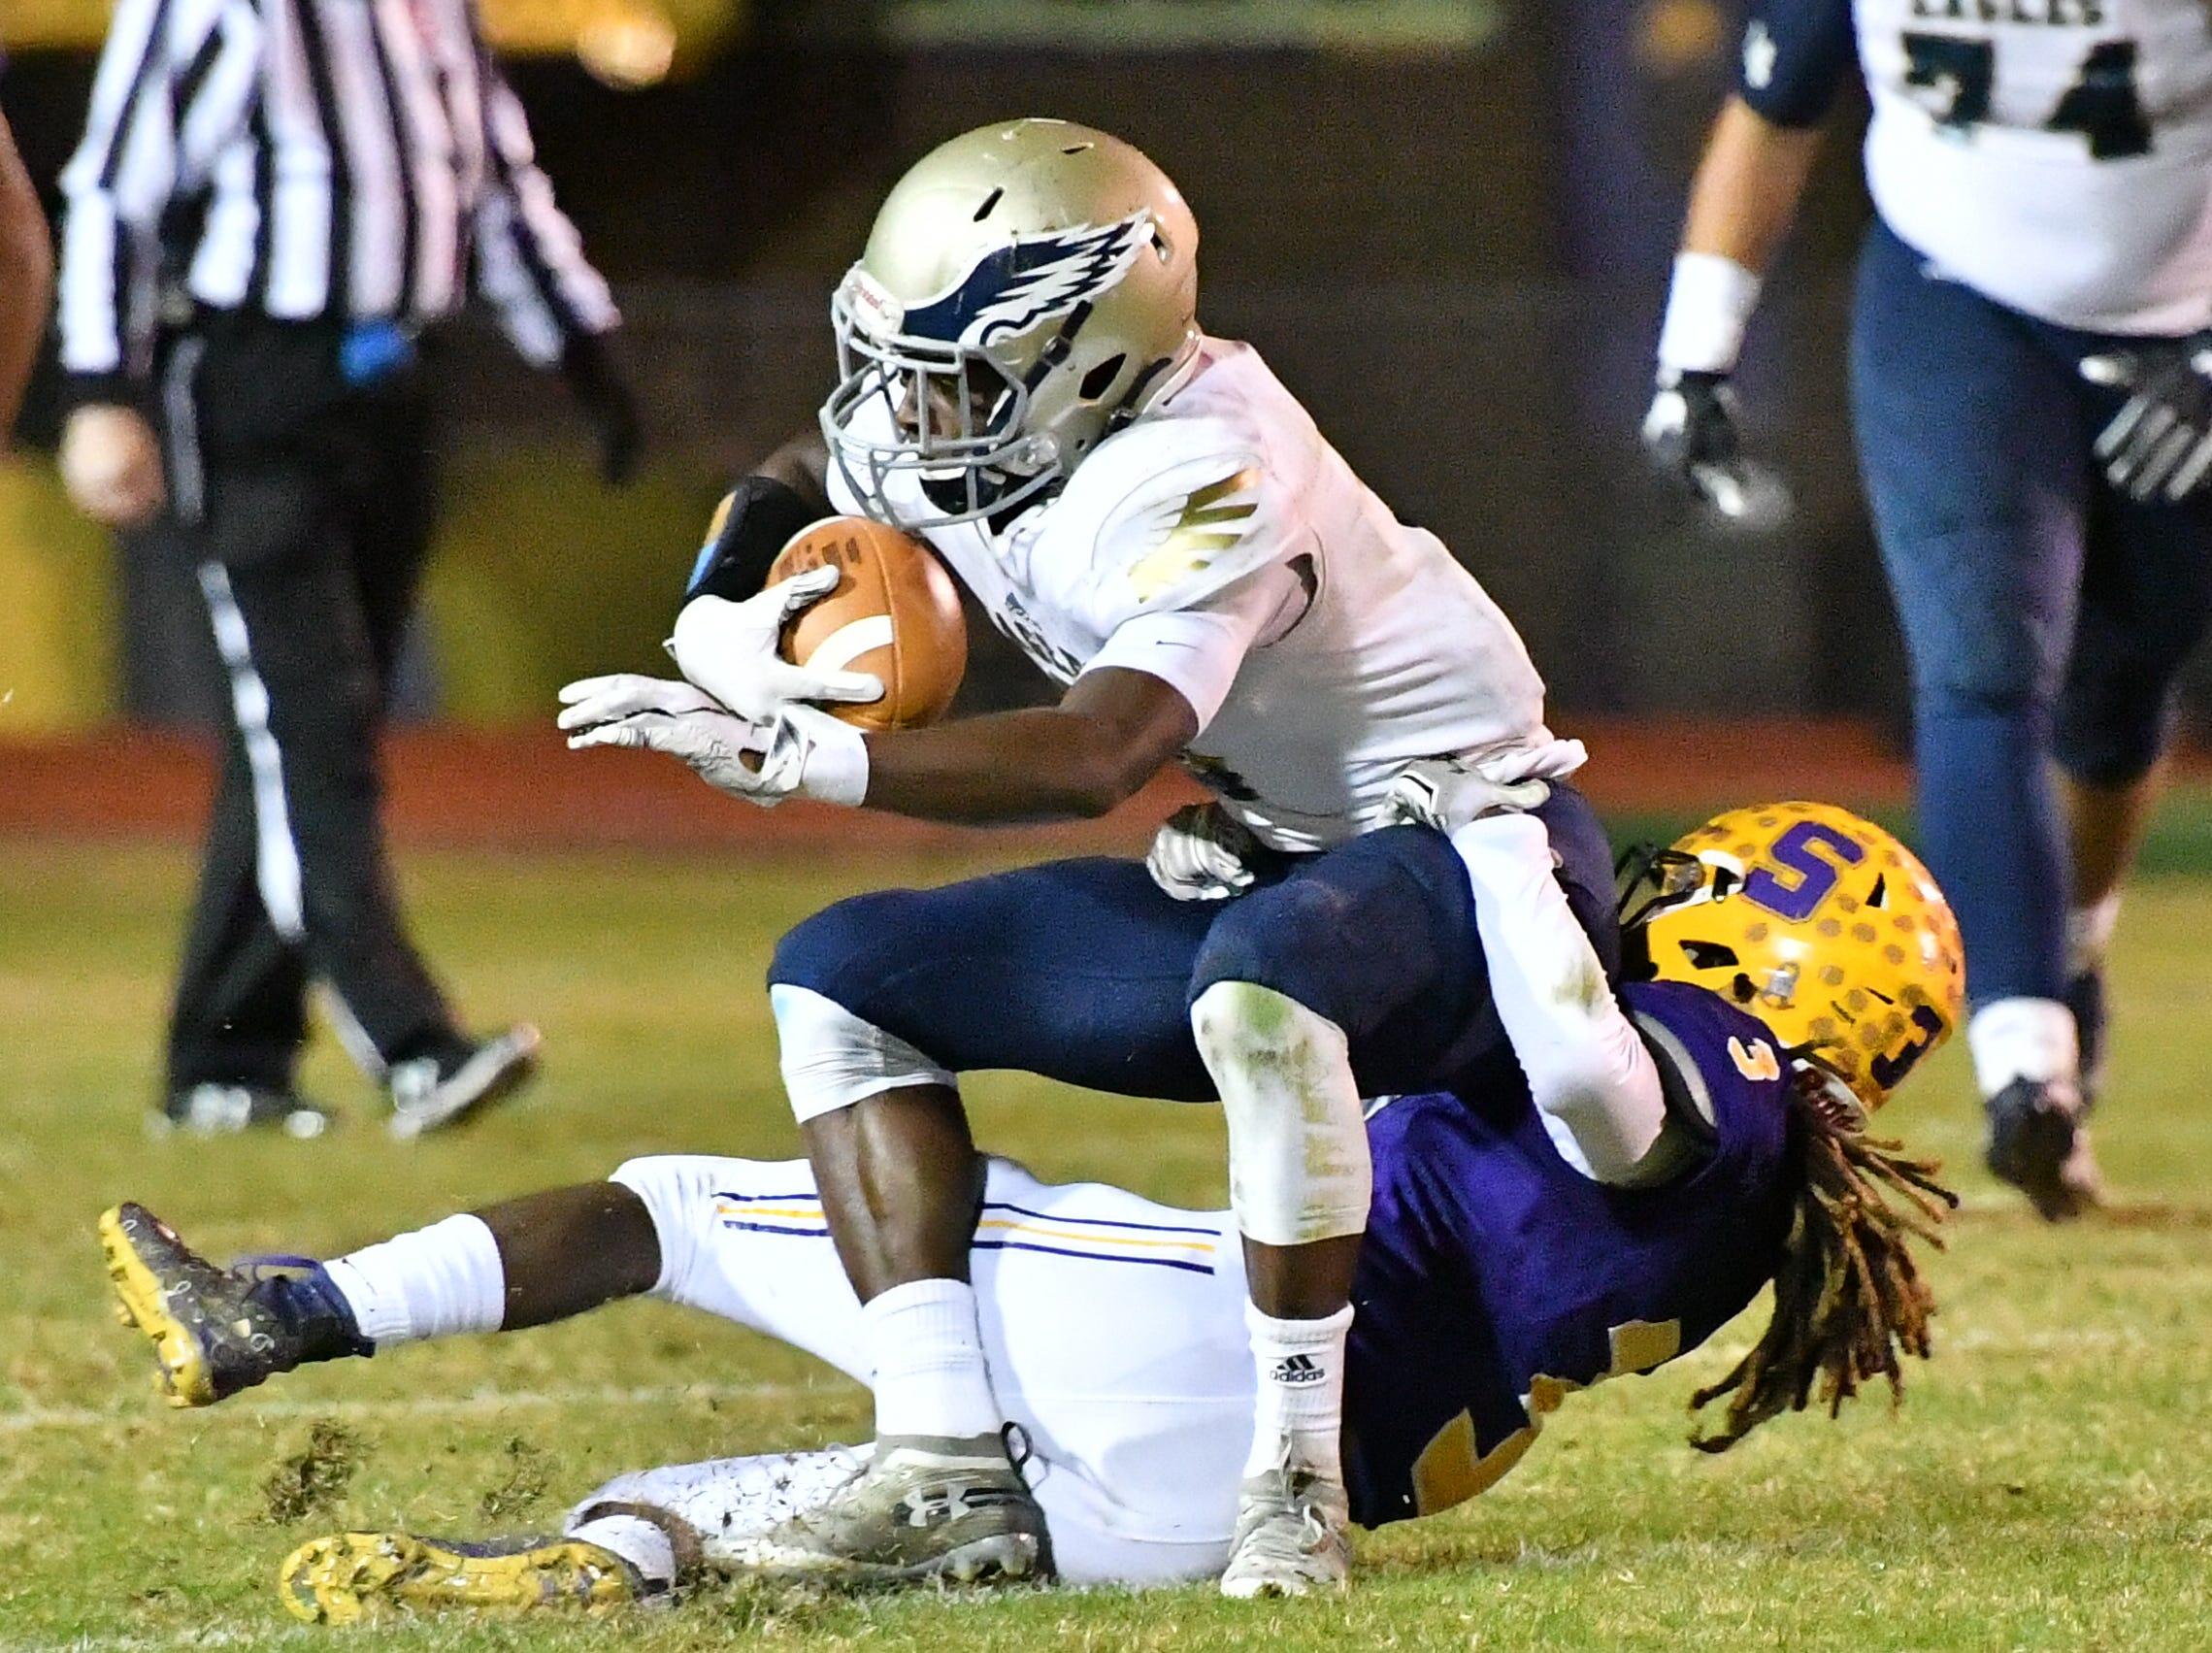 Independence's Isaiah Collier is brought down by Smyrna's Da'shawn Moore during Friday's 33-14 Eagles win.